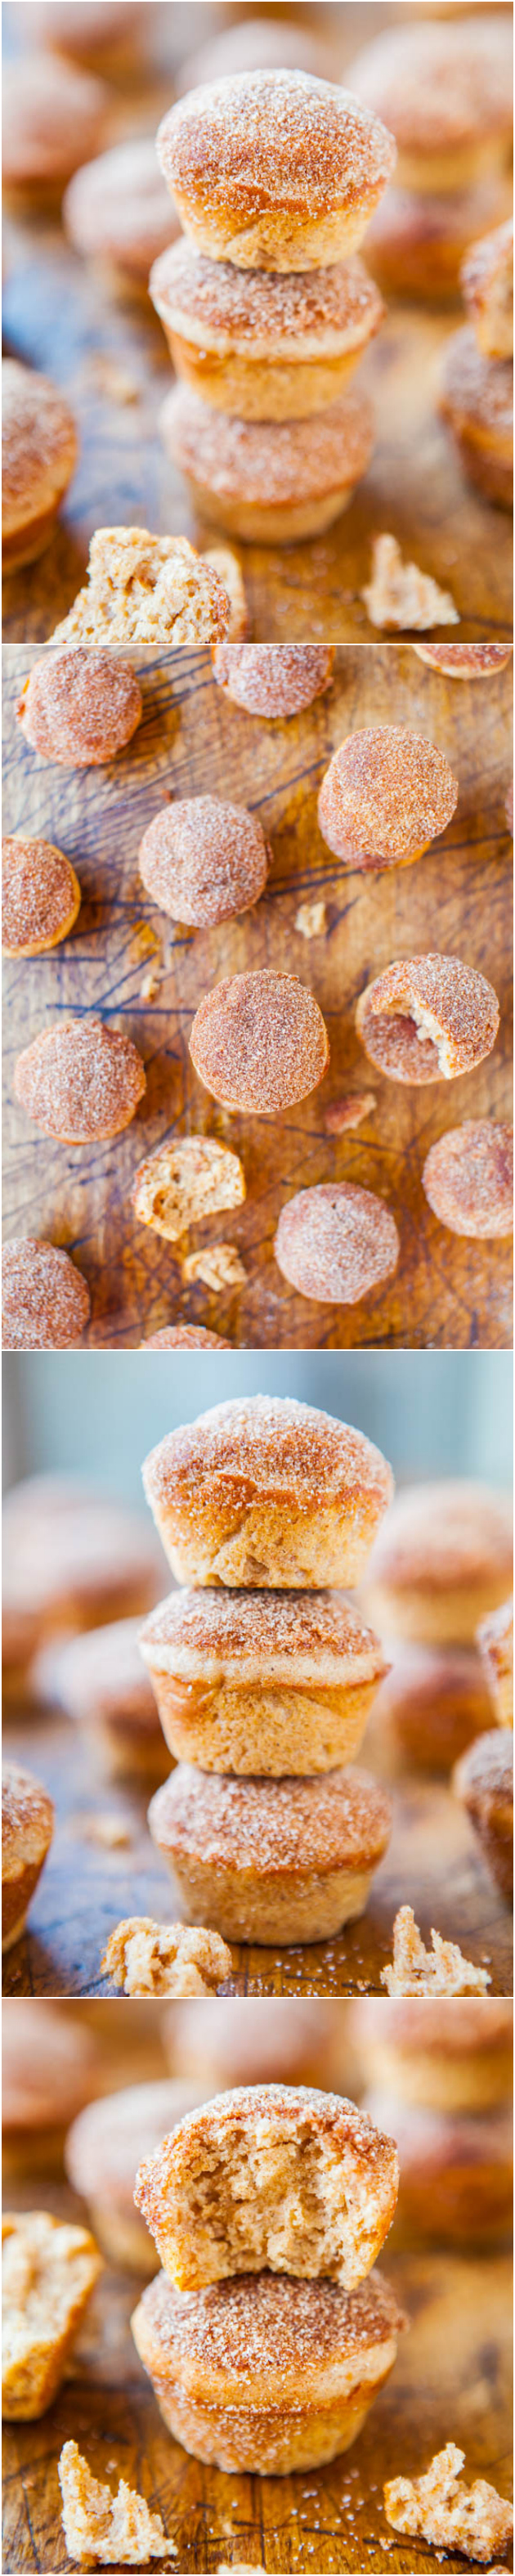 Cinnamon Sugar Mini Donut Muffins - Muffins that taste like decadent mini donuts! (But they're baked and way healthier!)